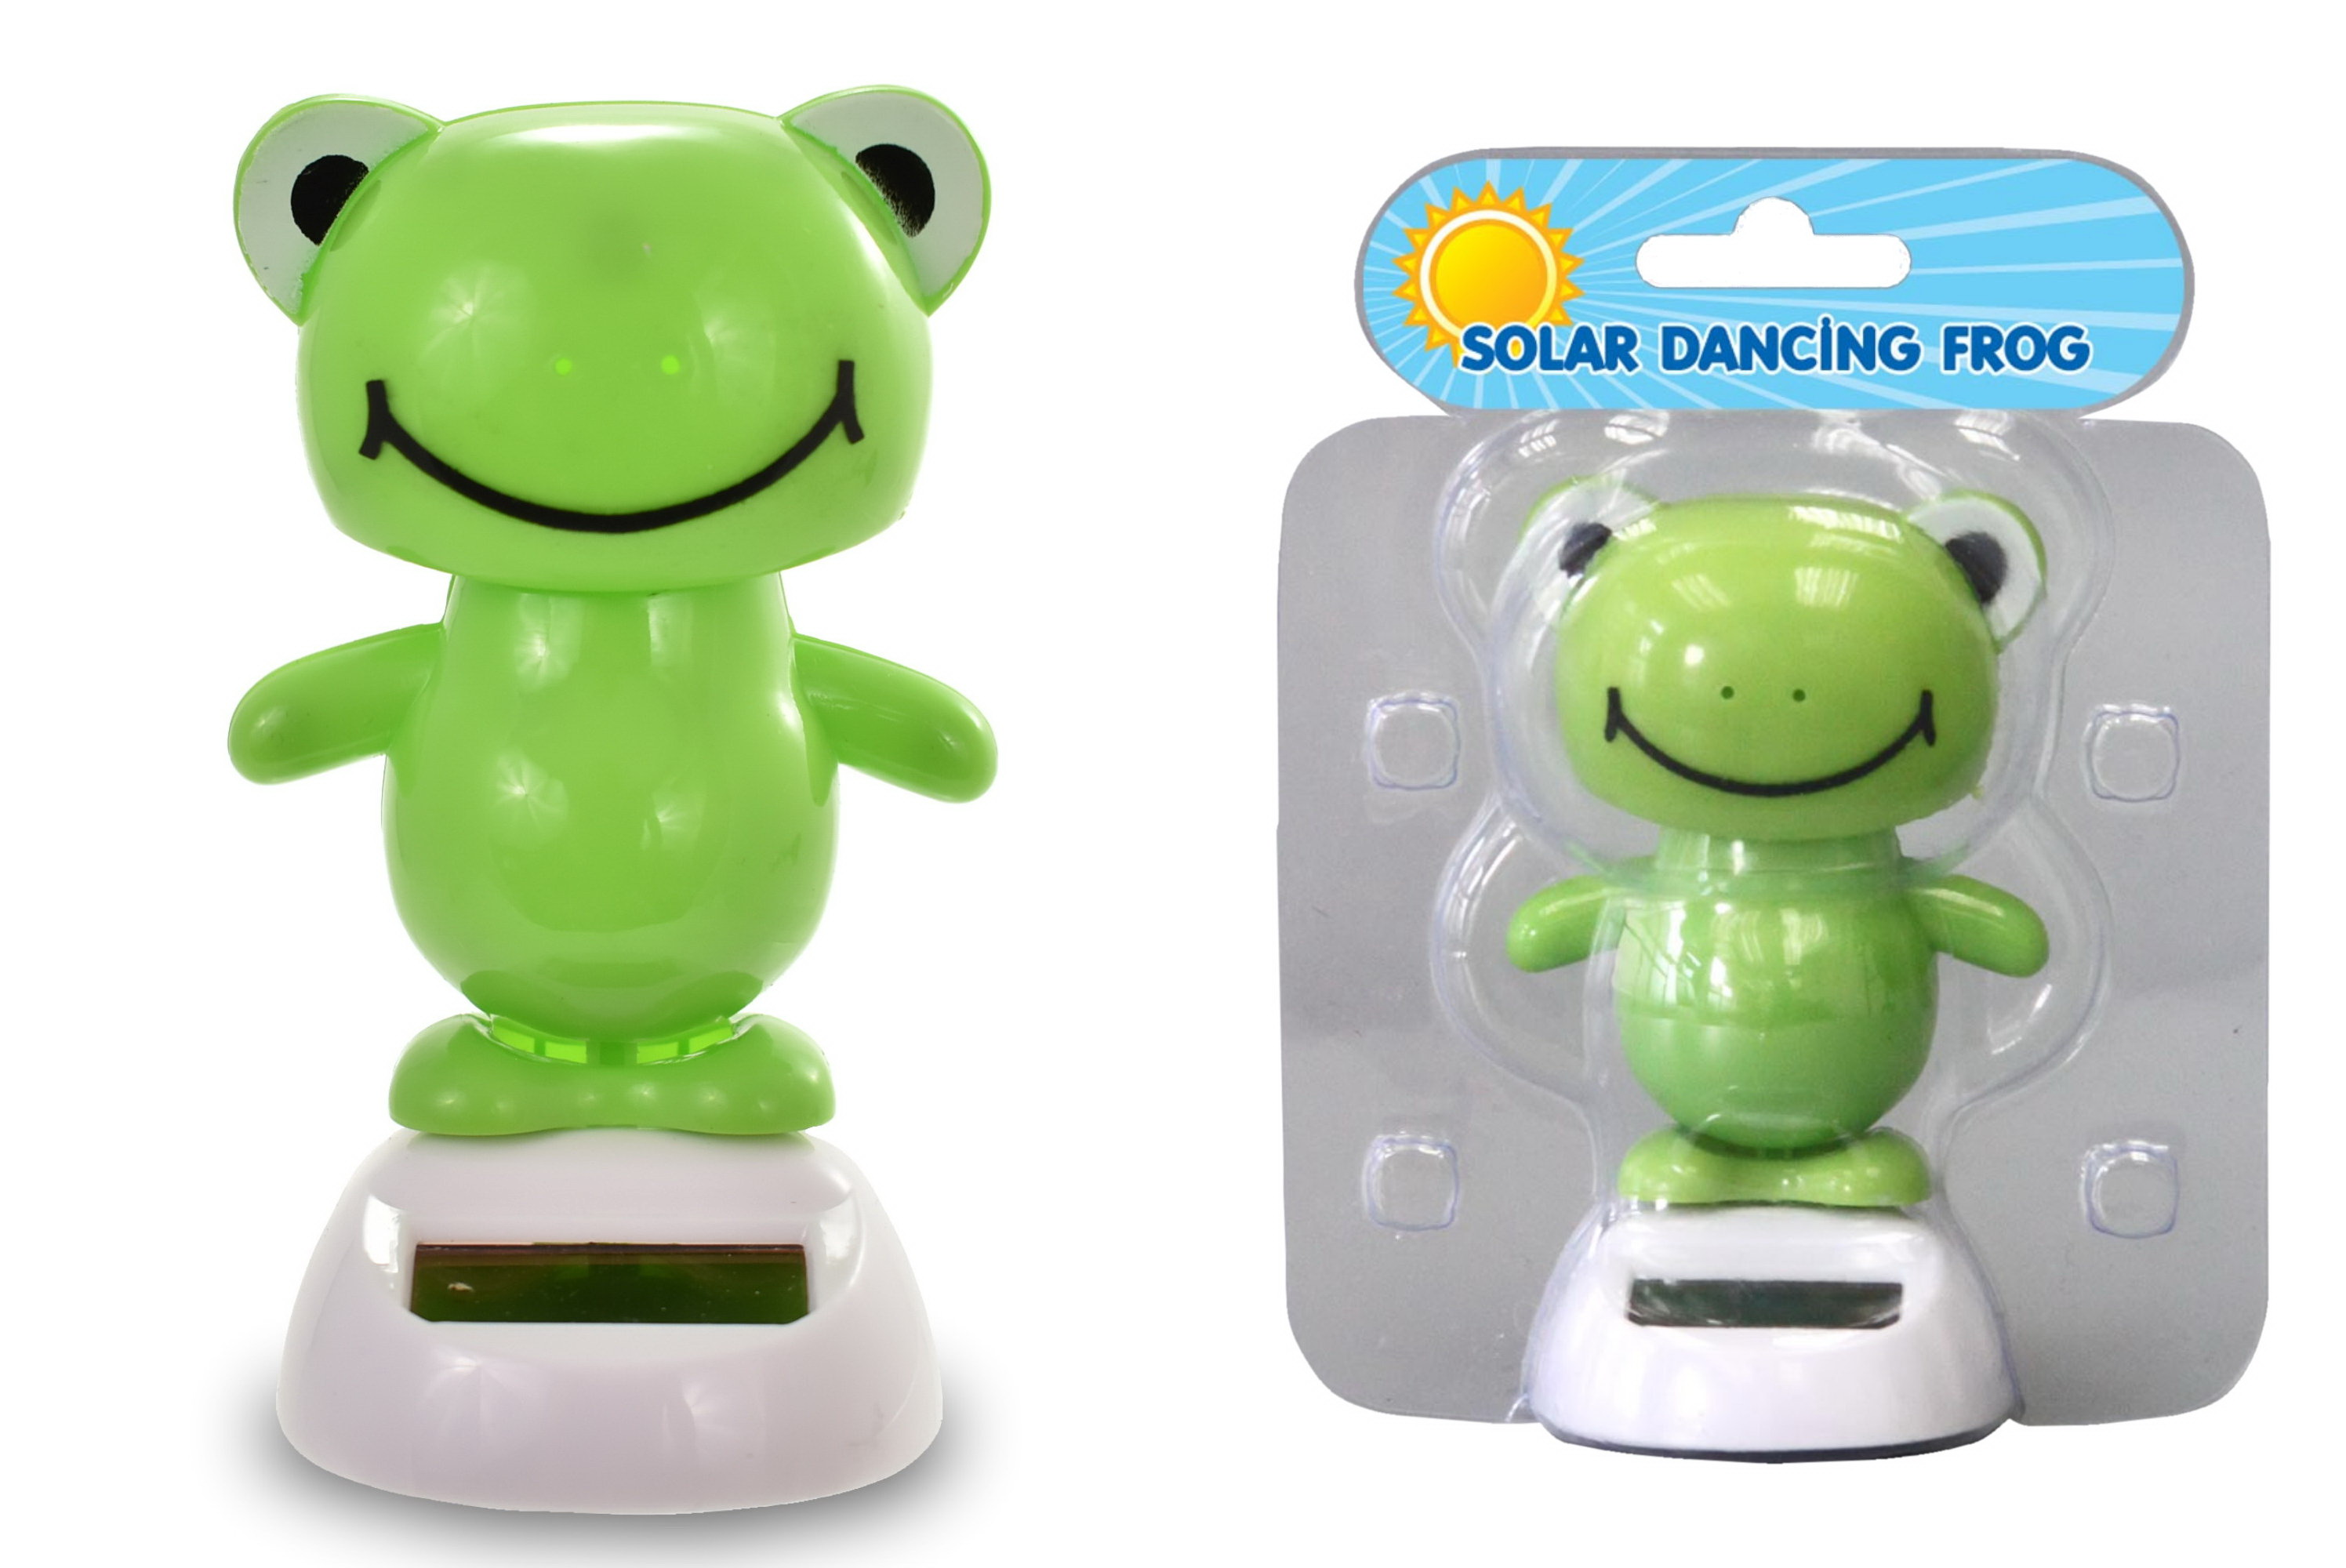 Solar Dancing Frog In Clamshell